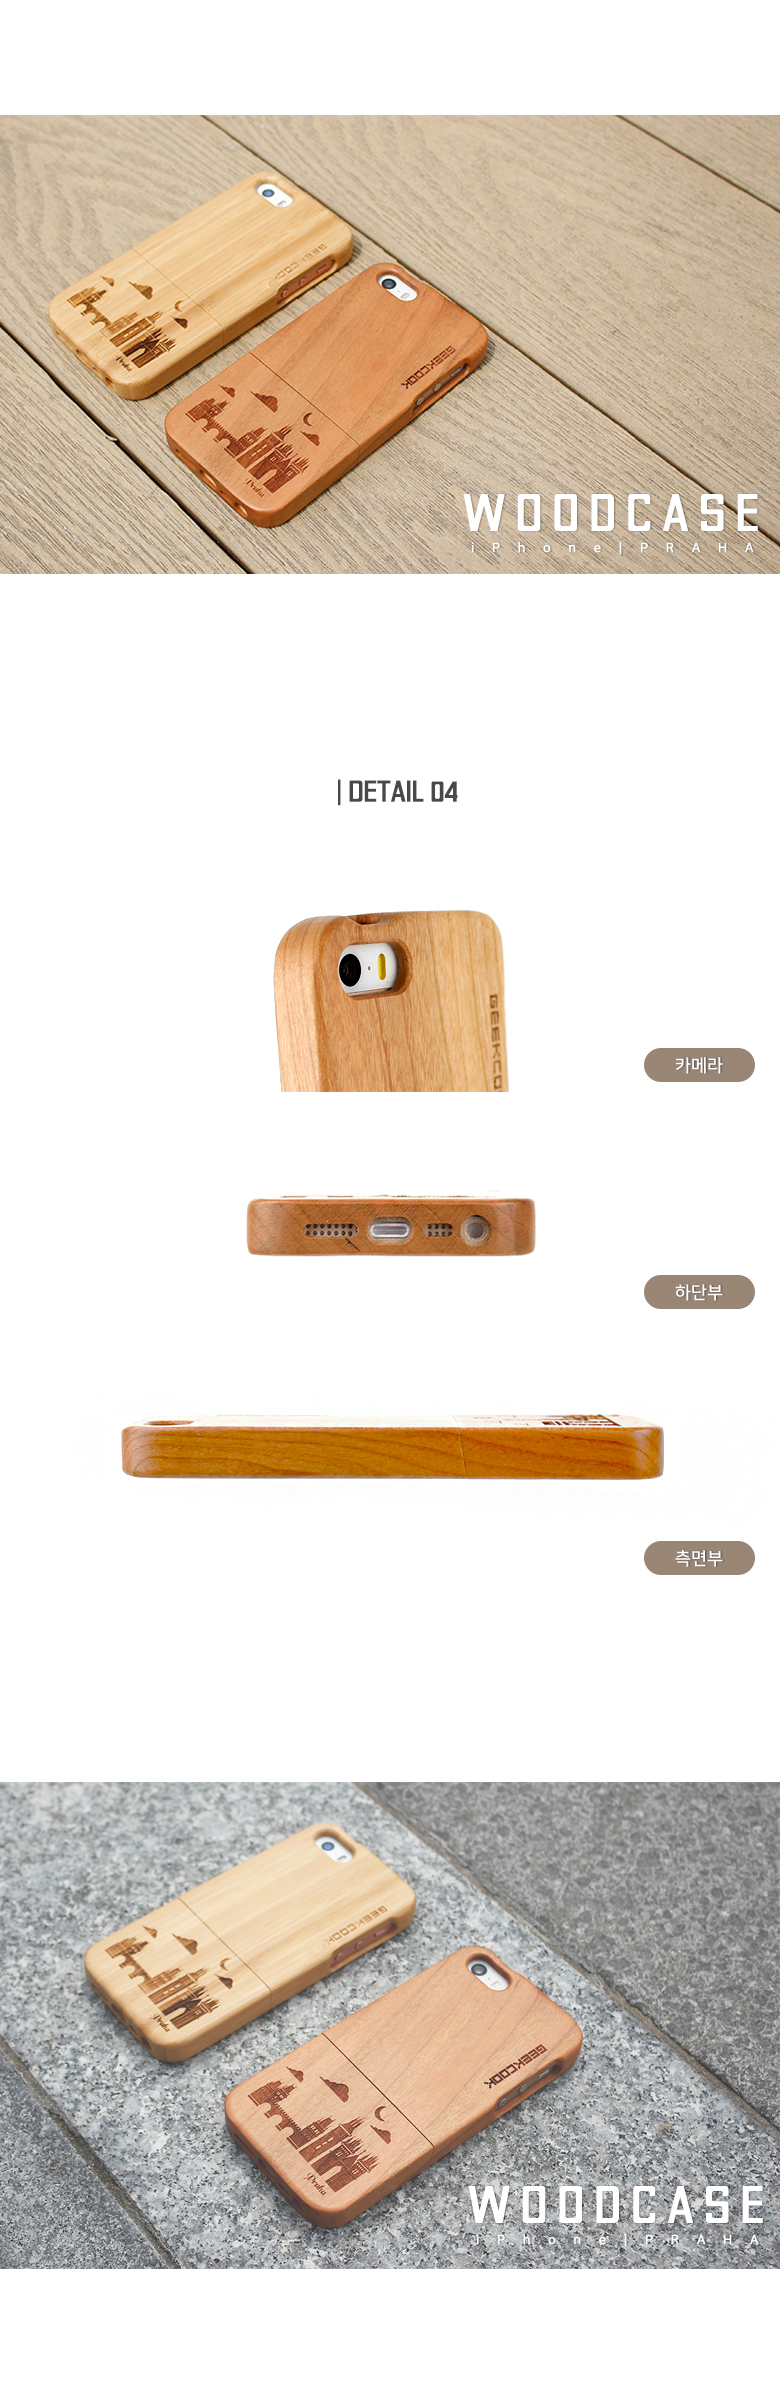 [ BISKET ] iPhone 5/5s/5se Landmark Wood Case Praha